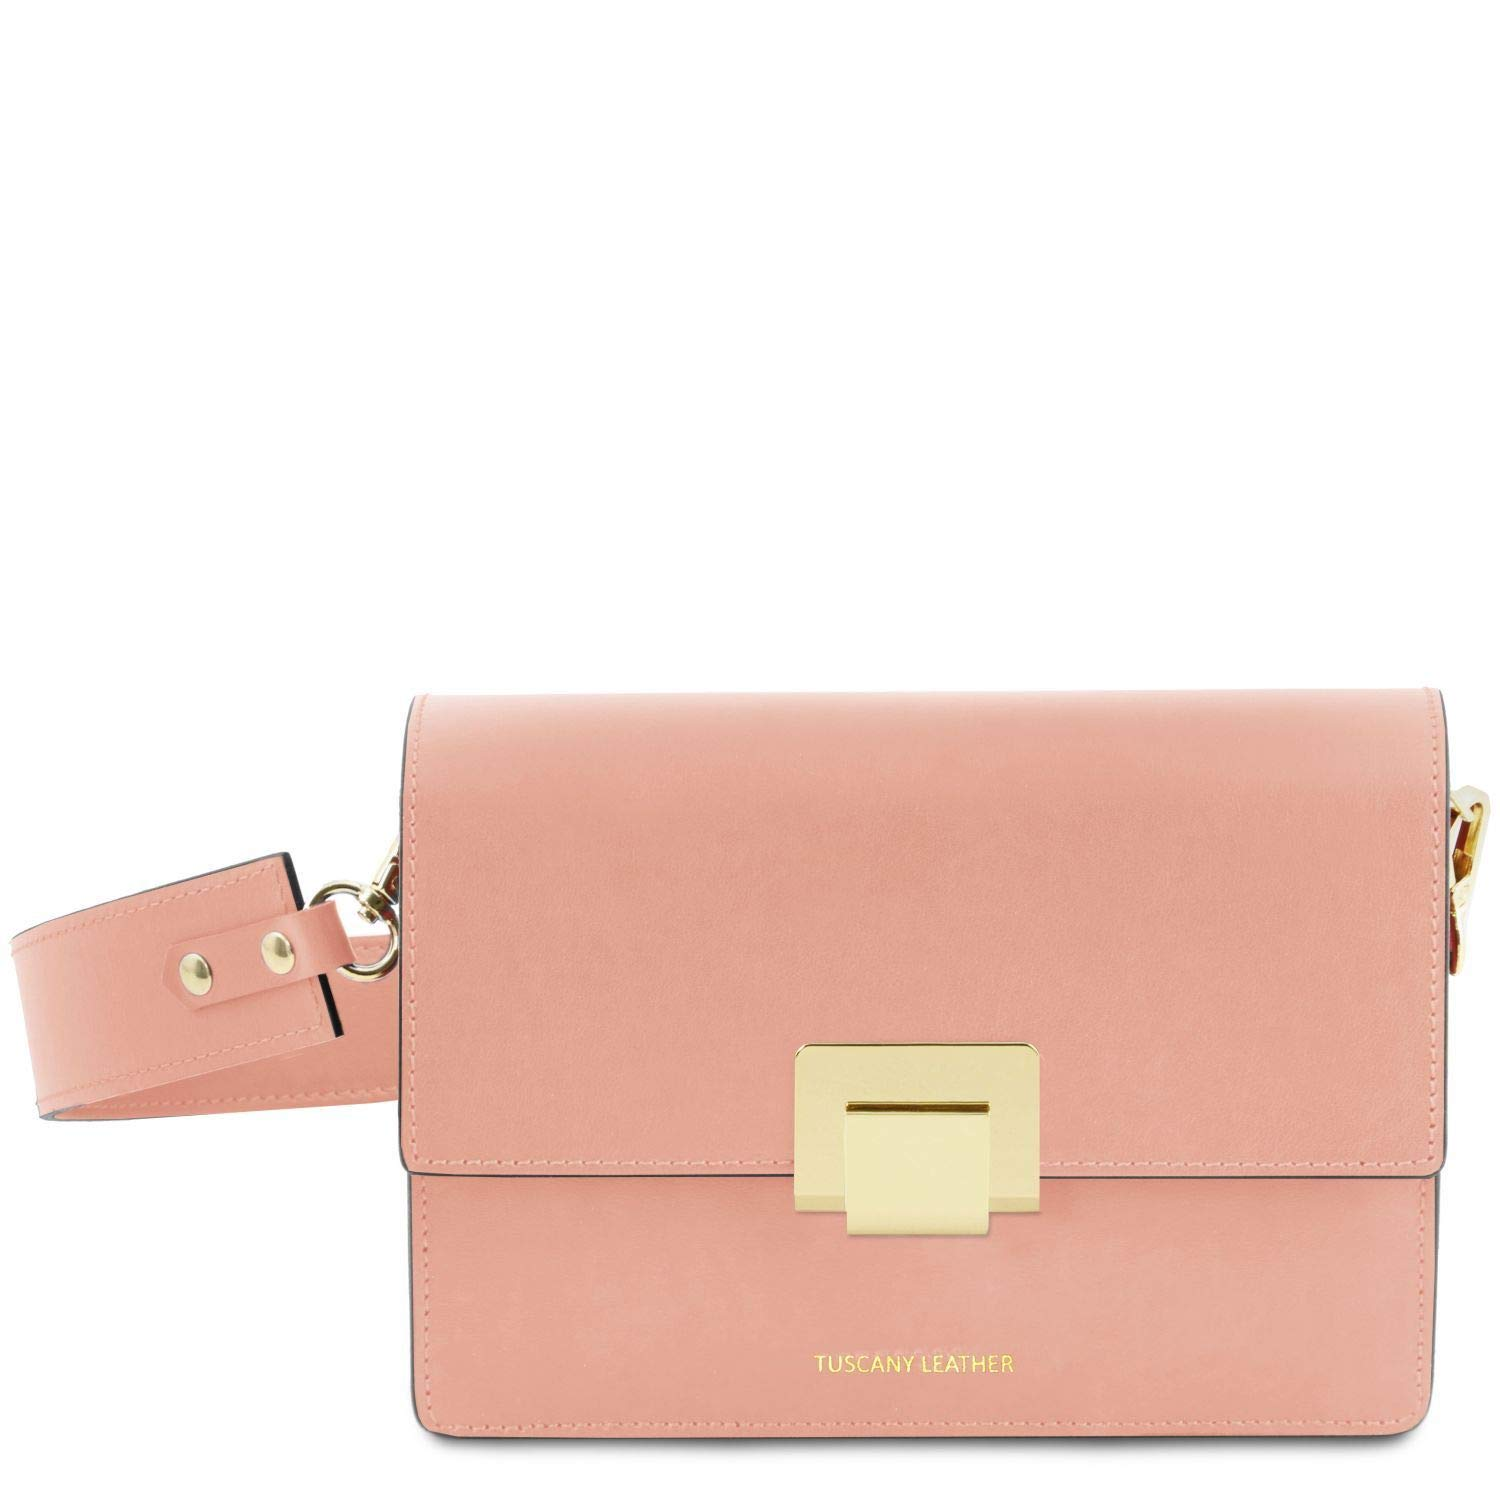 Ballet Pink Tuscany Leather Adele Leather Clutch  TL141742 (Ballet Pink)